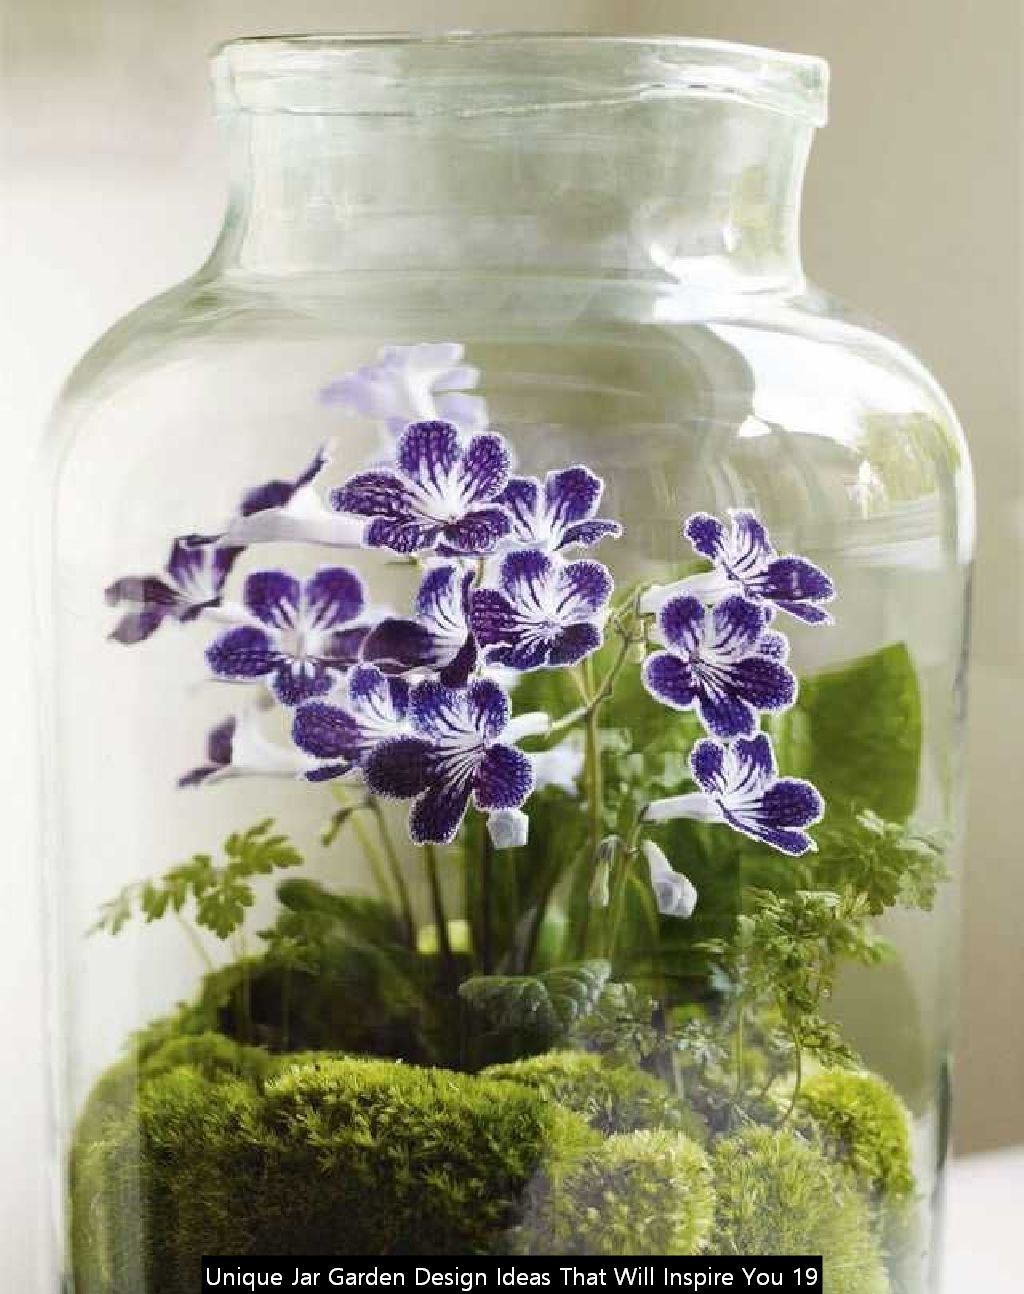 Unique Jar Garden Design Ideas That Will Inspire You 19